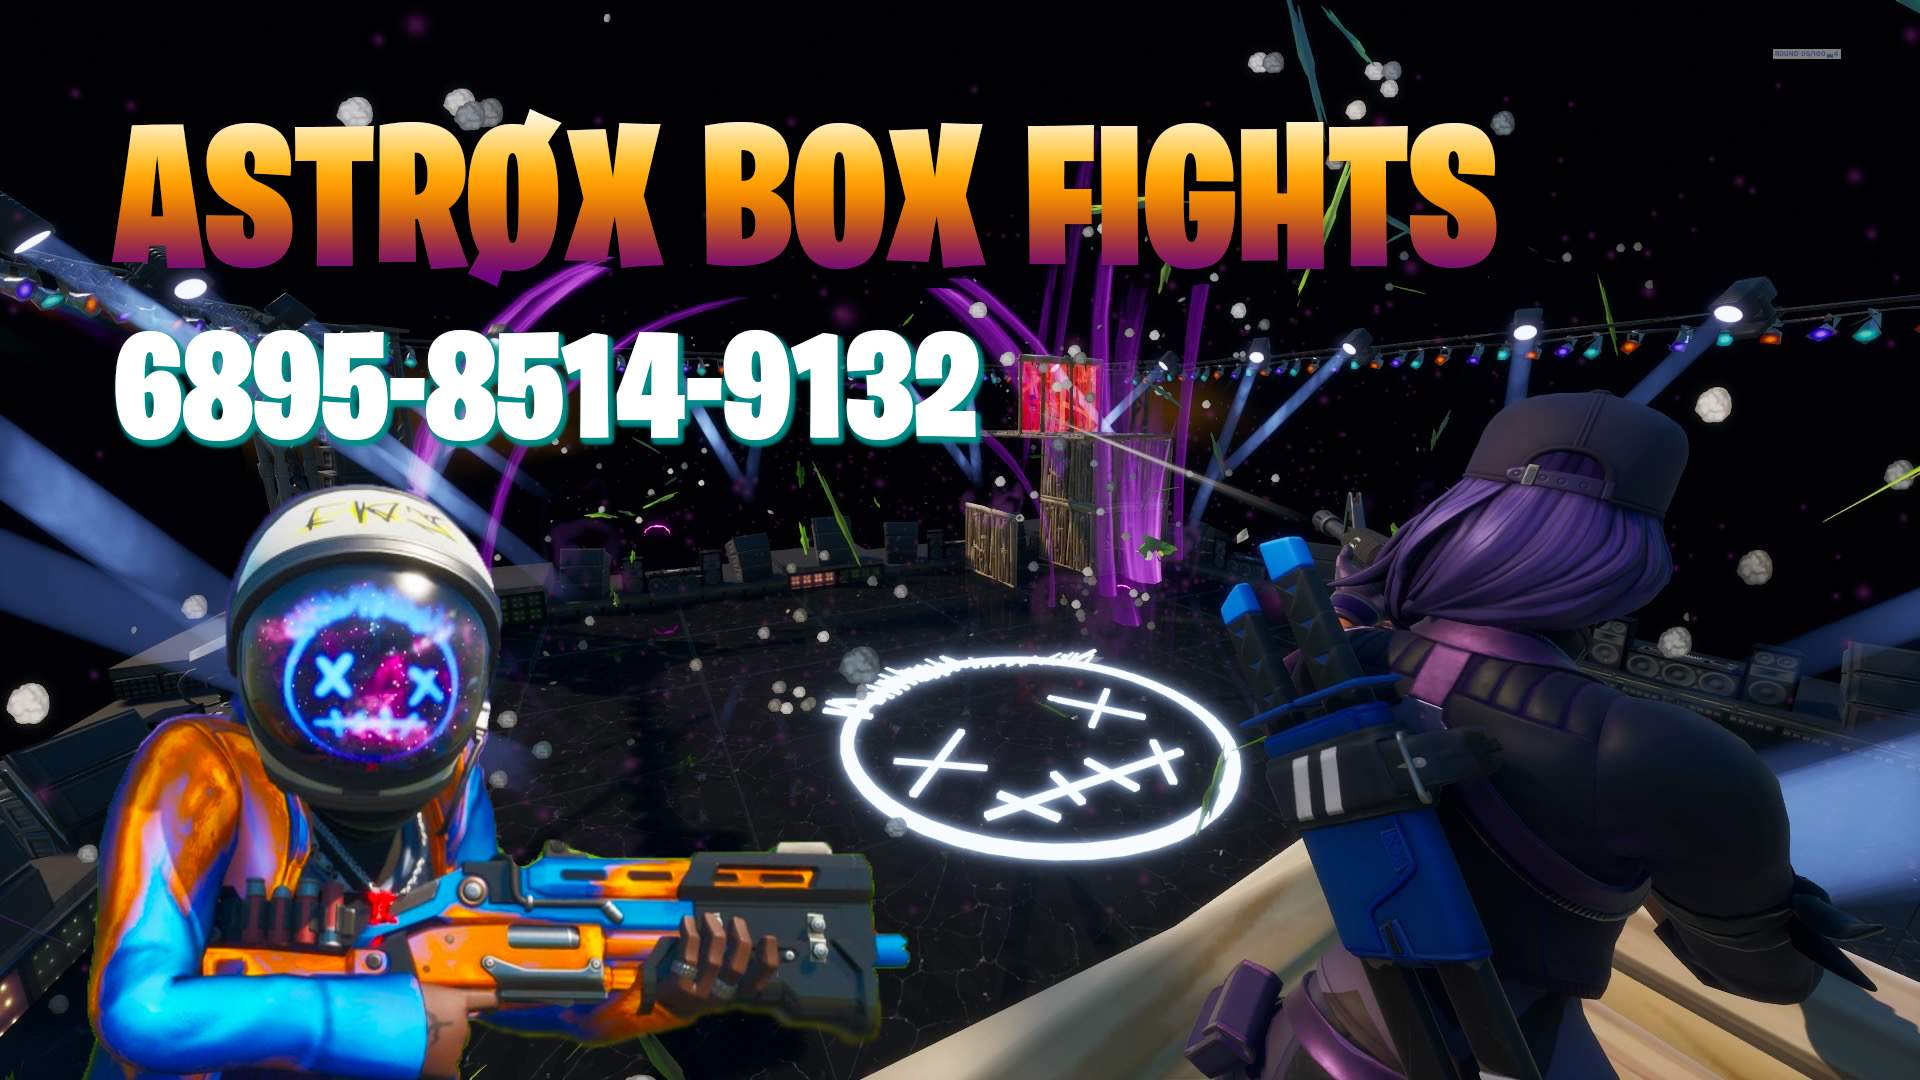 🚀🌑 ASTRONOMICAL BOX FIGHTS 🔥🎡